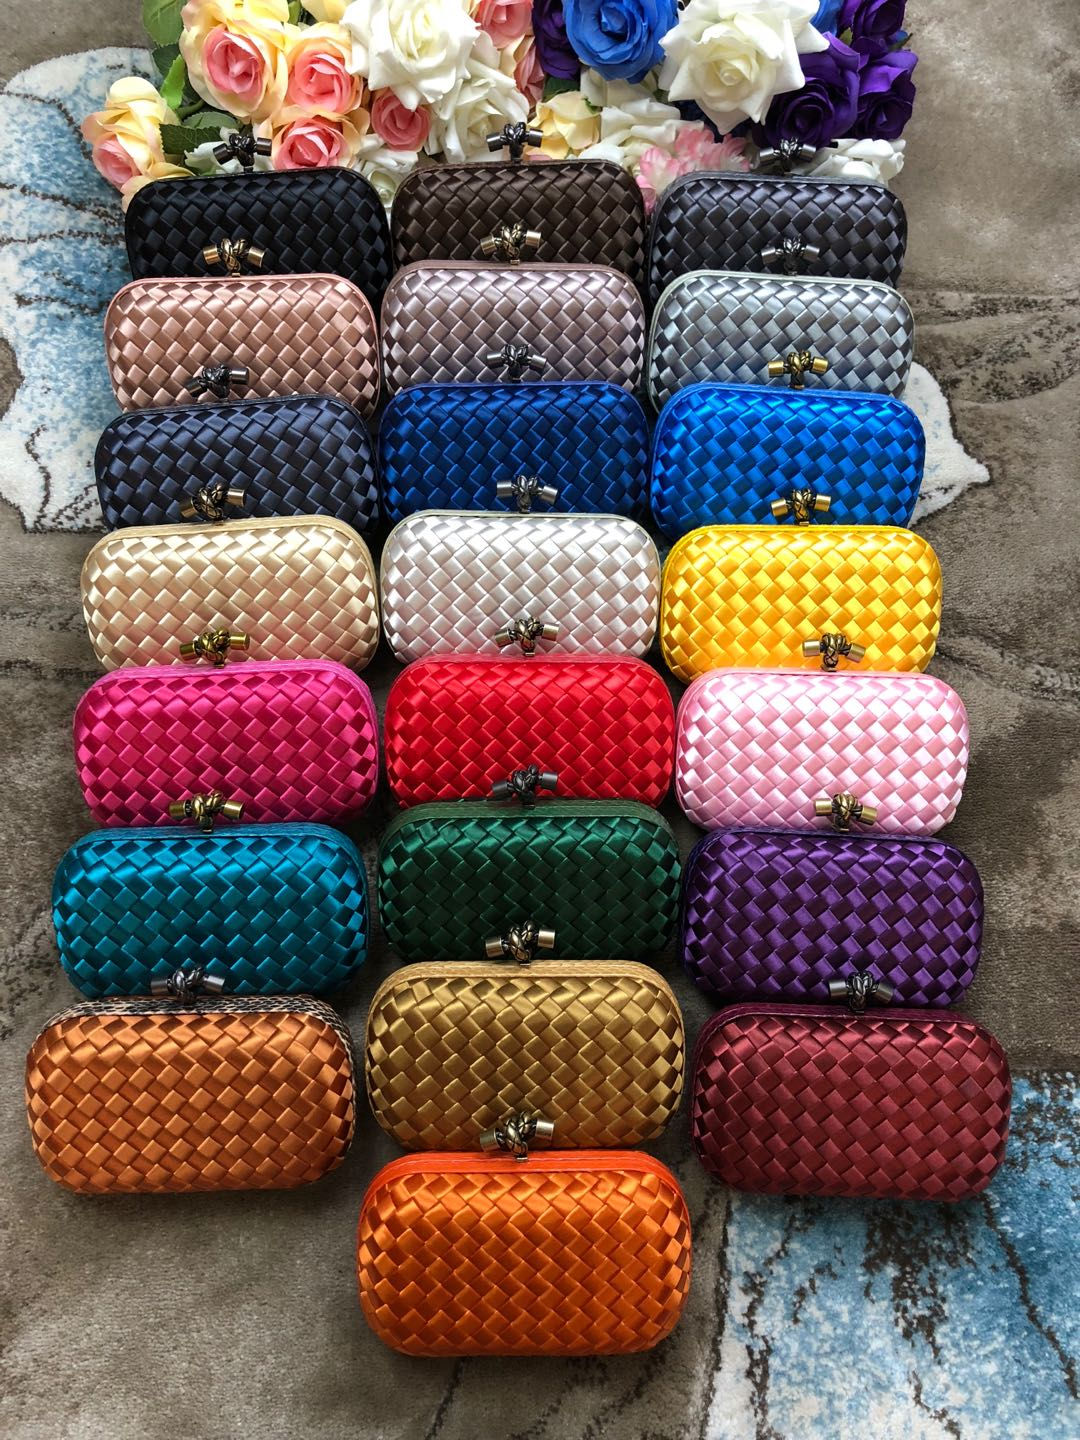 Real 1:1 Bottega Veneta Pouch Clutches in Multiple Colors